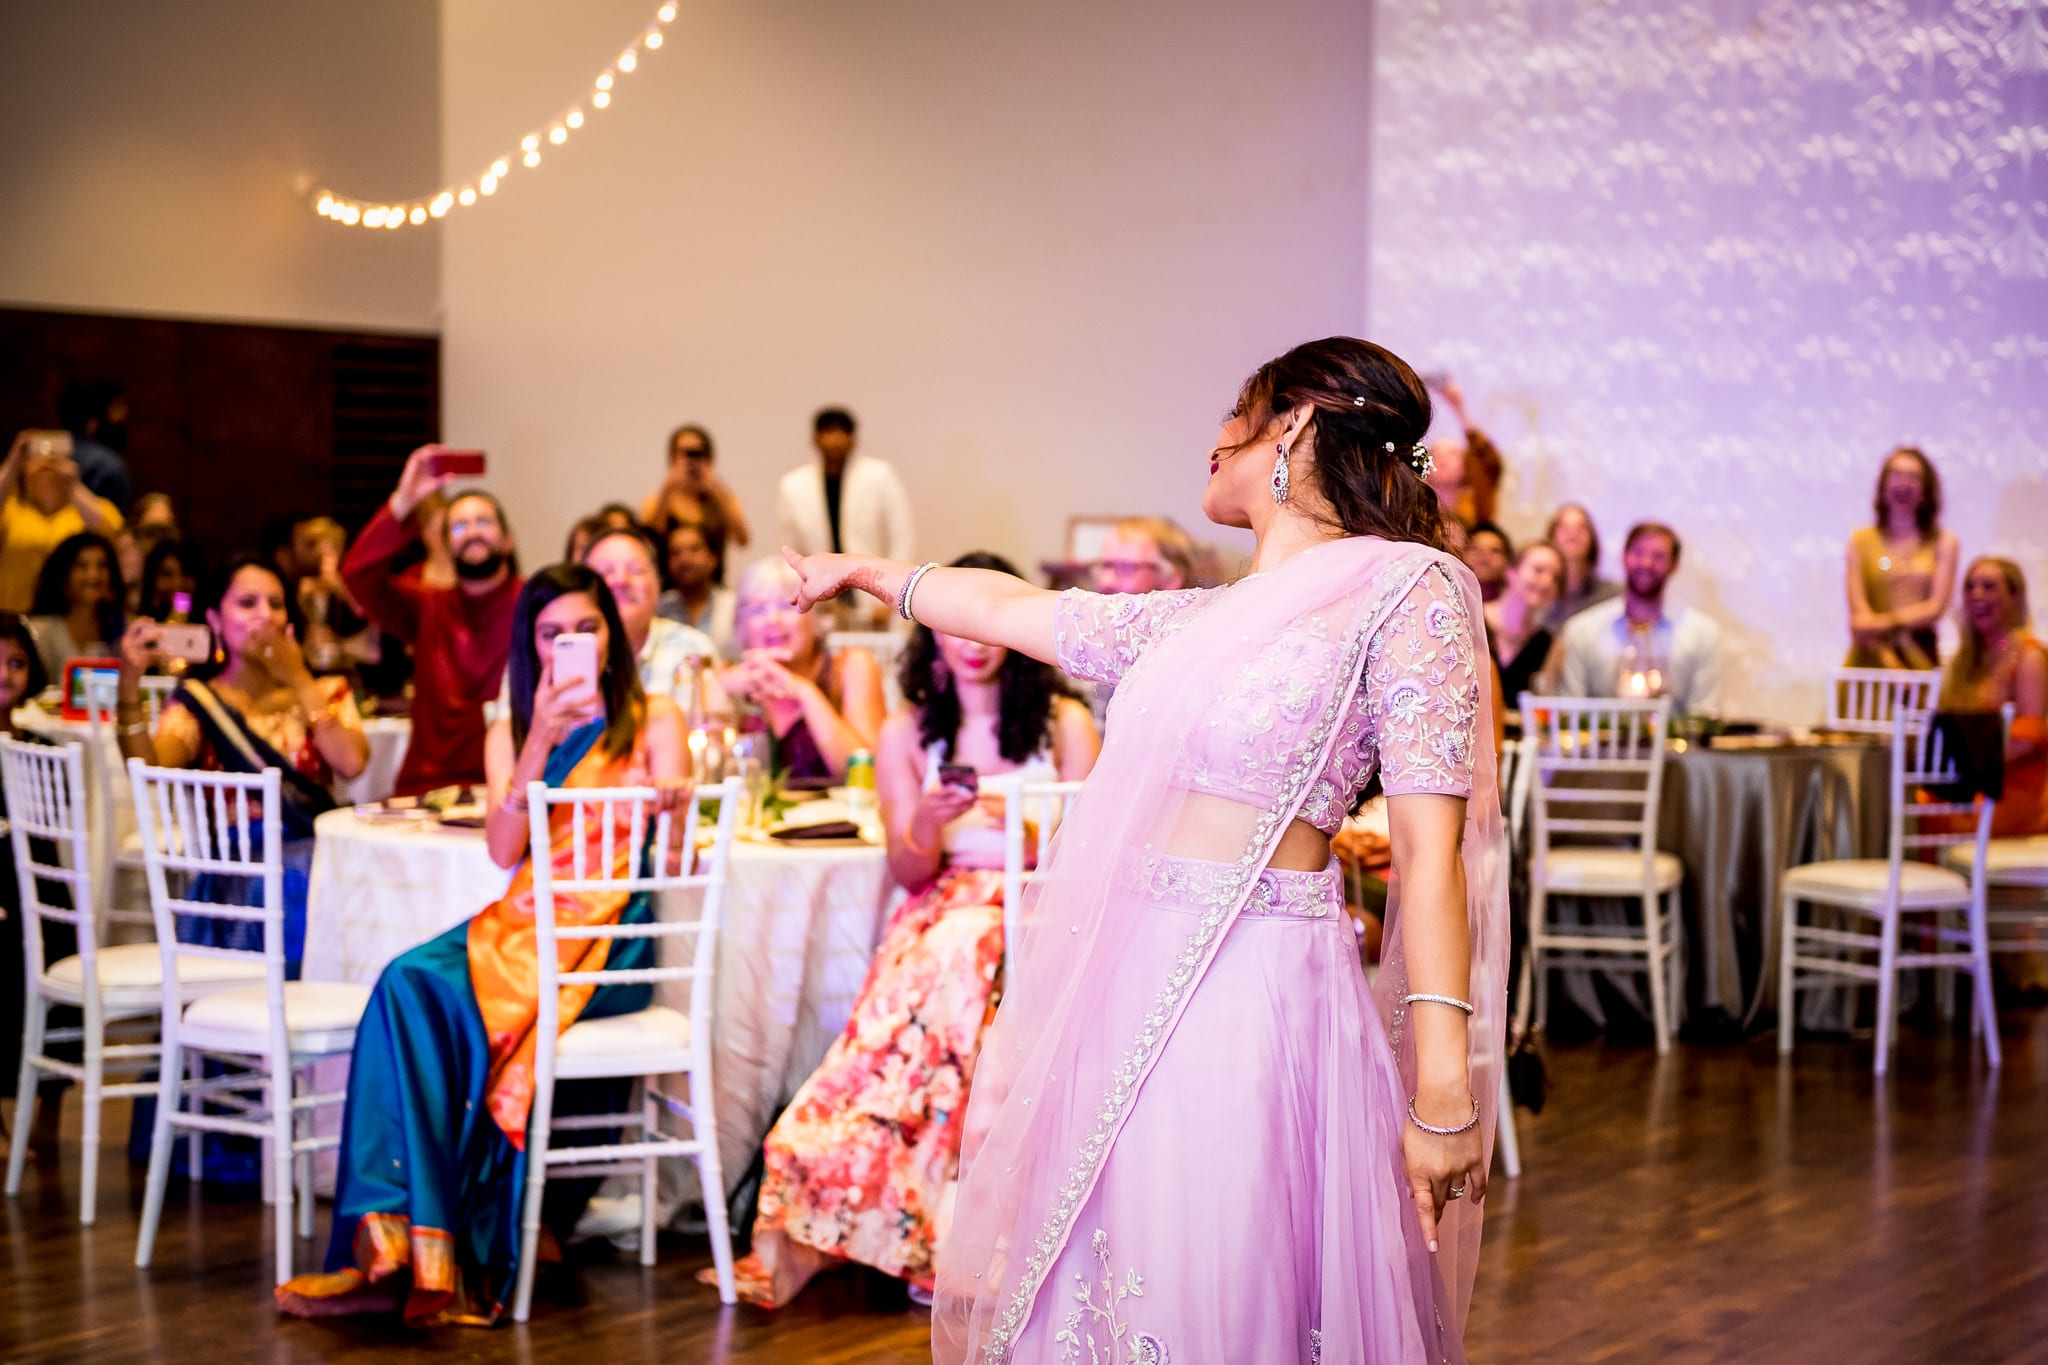 Bride performs a choreographed solo dance